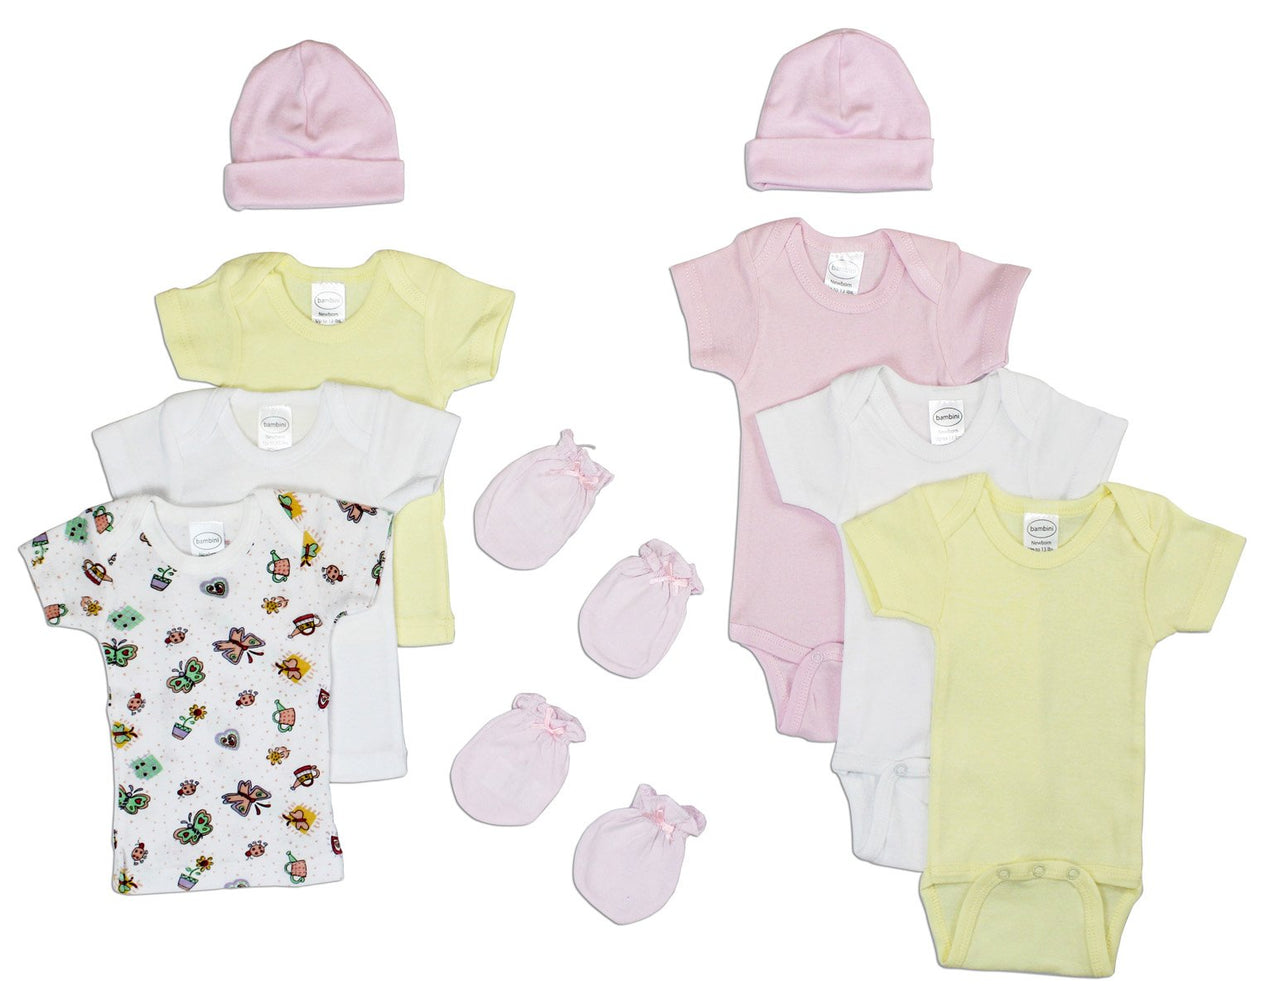 Baby Clothing - Newborn Baby Girls 10 Piece Layette Gift Set